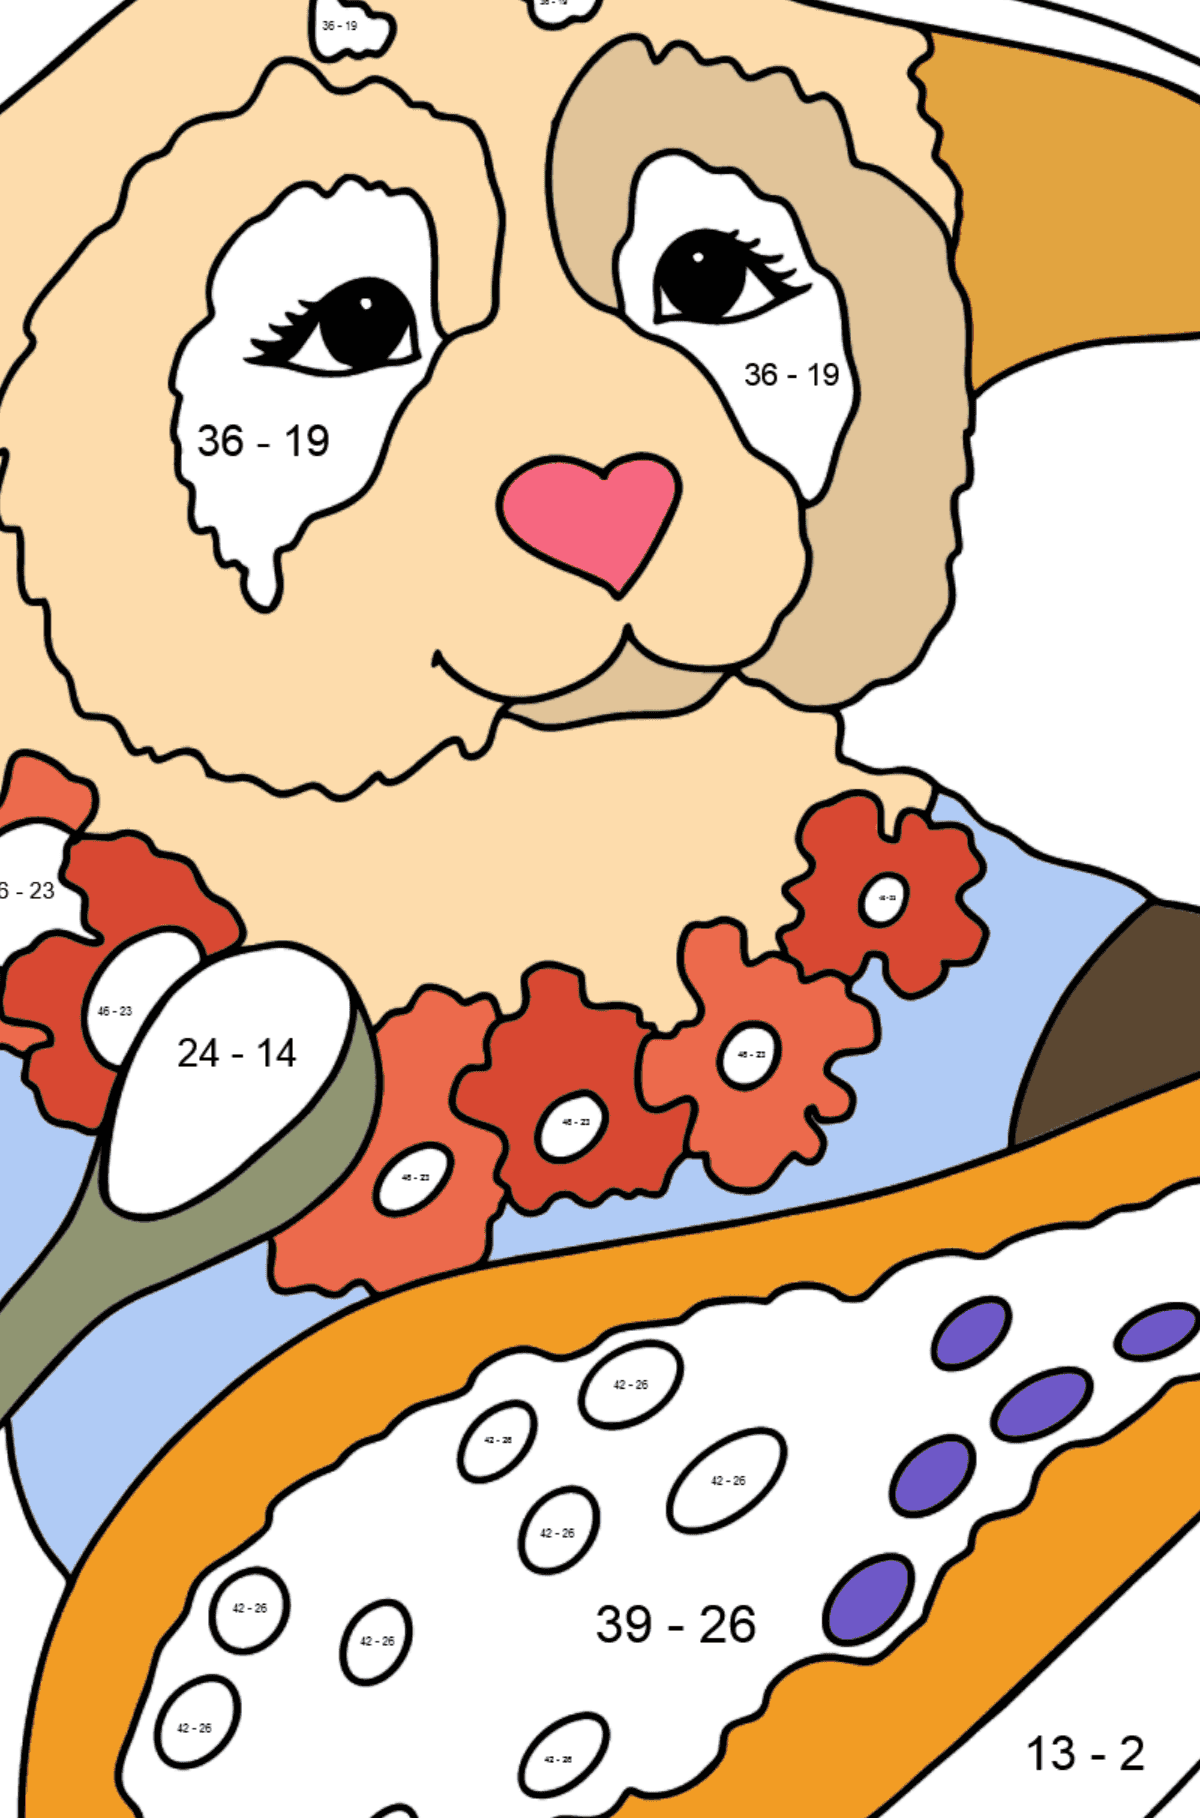 Coloring Page - A Panda is Eating Papaya - Math Coloring - Subtraction for Kids